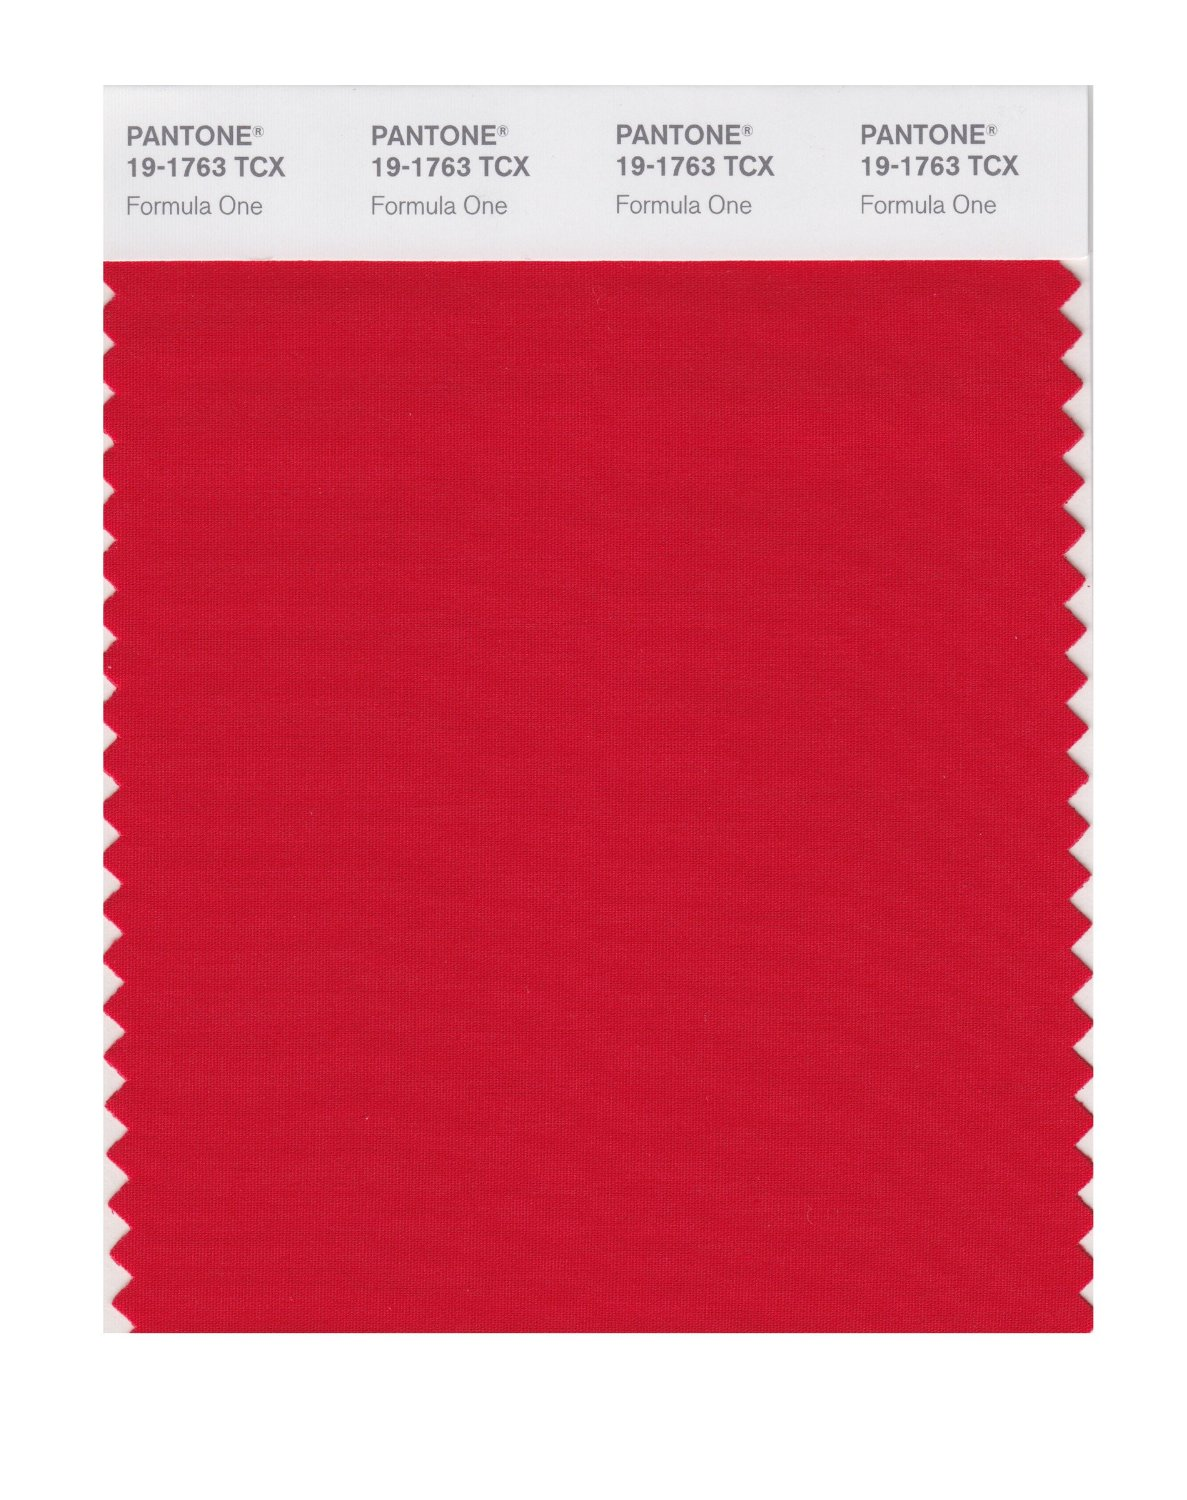 Pantone Smart Swatch 19-1763 Racing Red